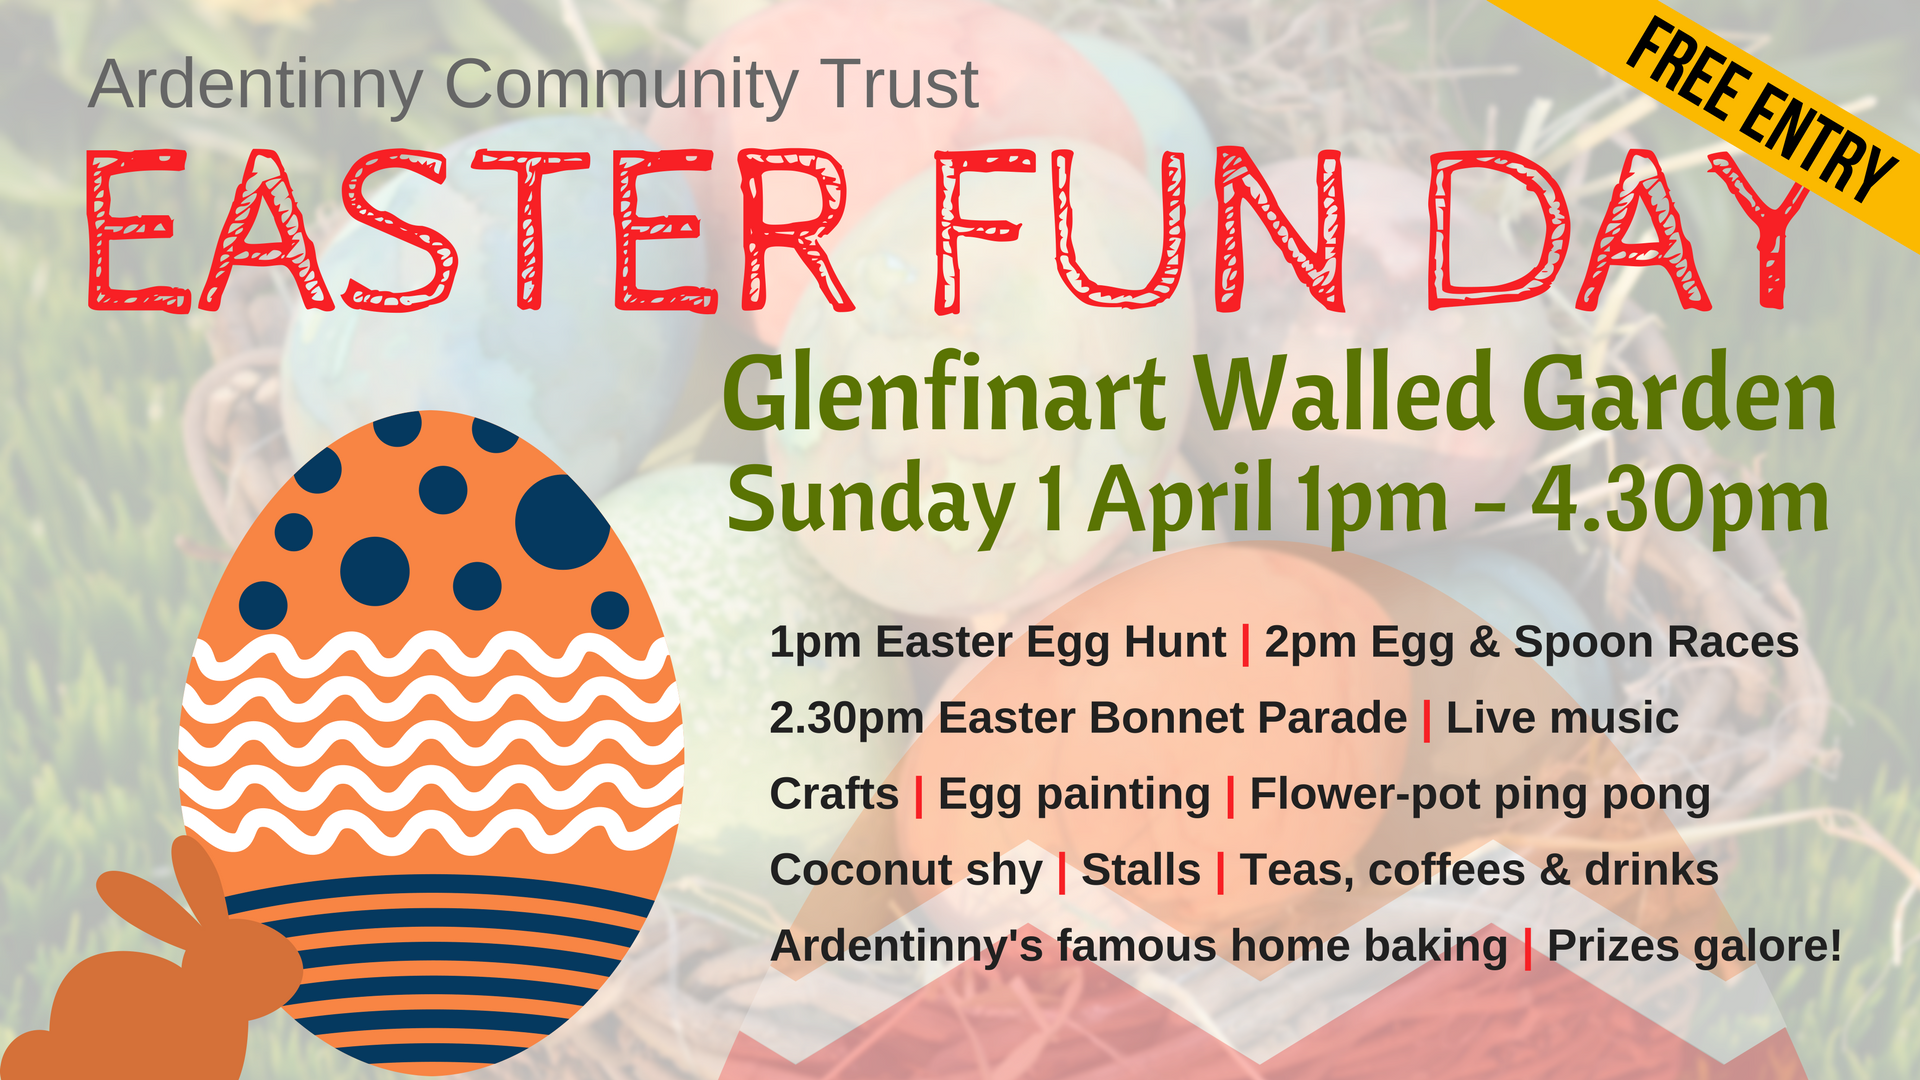 This Sunday - Easter Fun Day @ Glenfinart Walled Garden